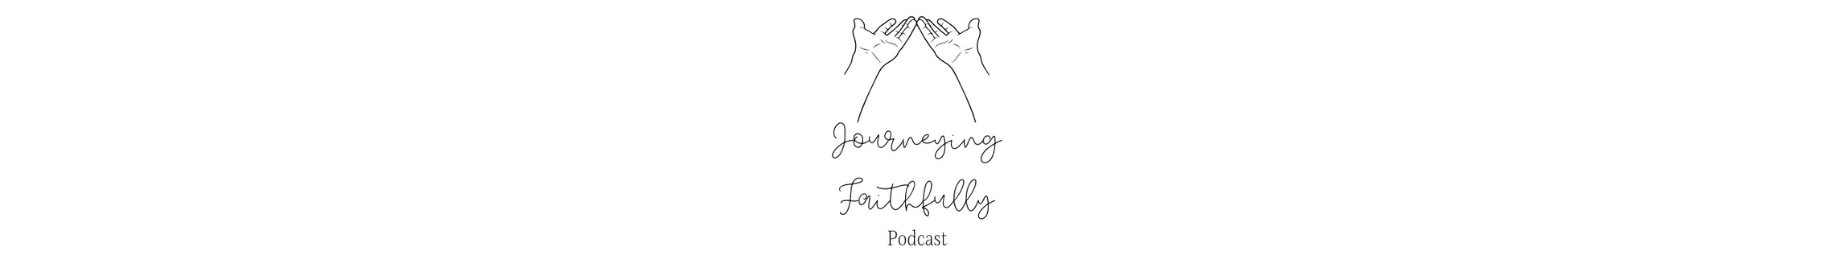 Journeying Faithfully Podcast